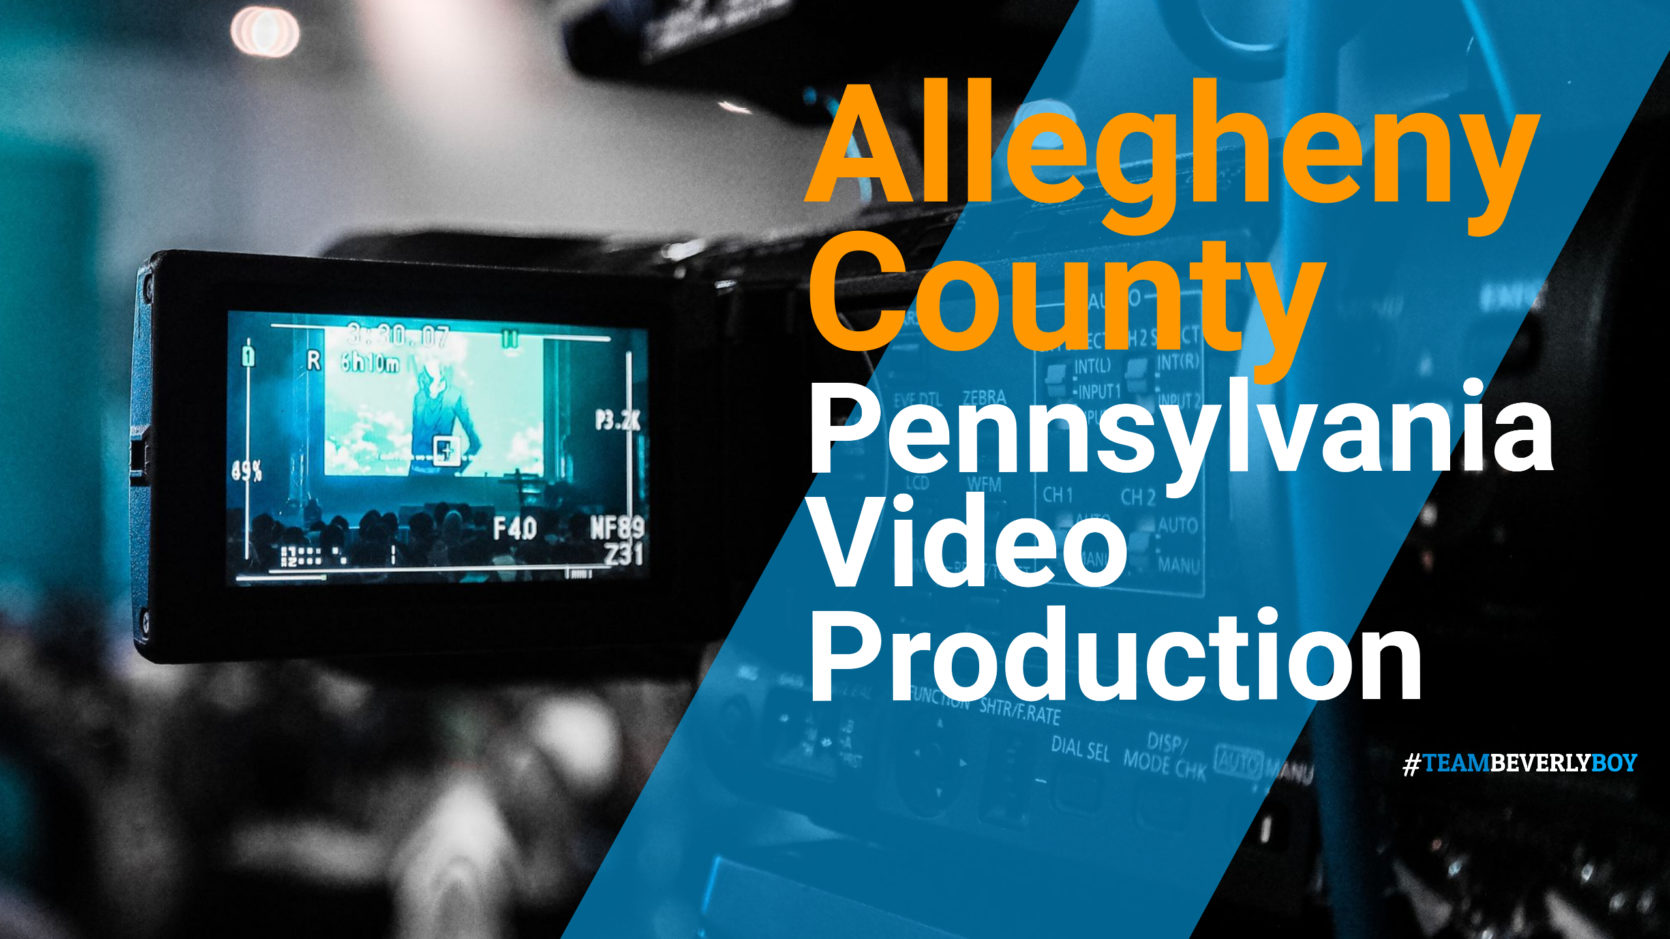 Allegheny County, PA Video Production